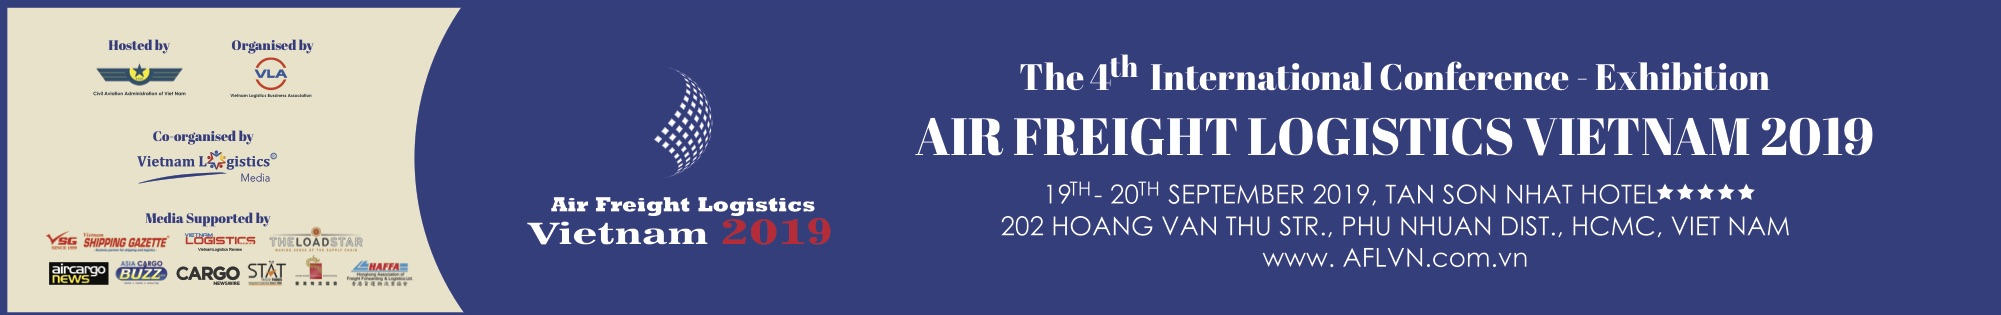 air freight logistics vietnam 2015